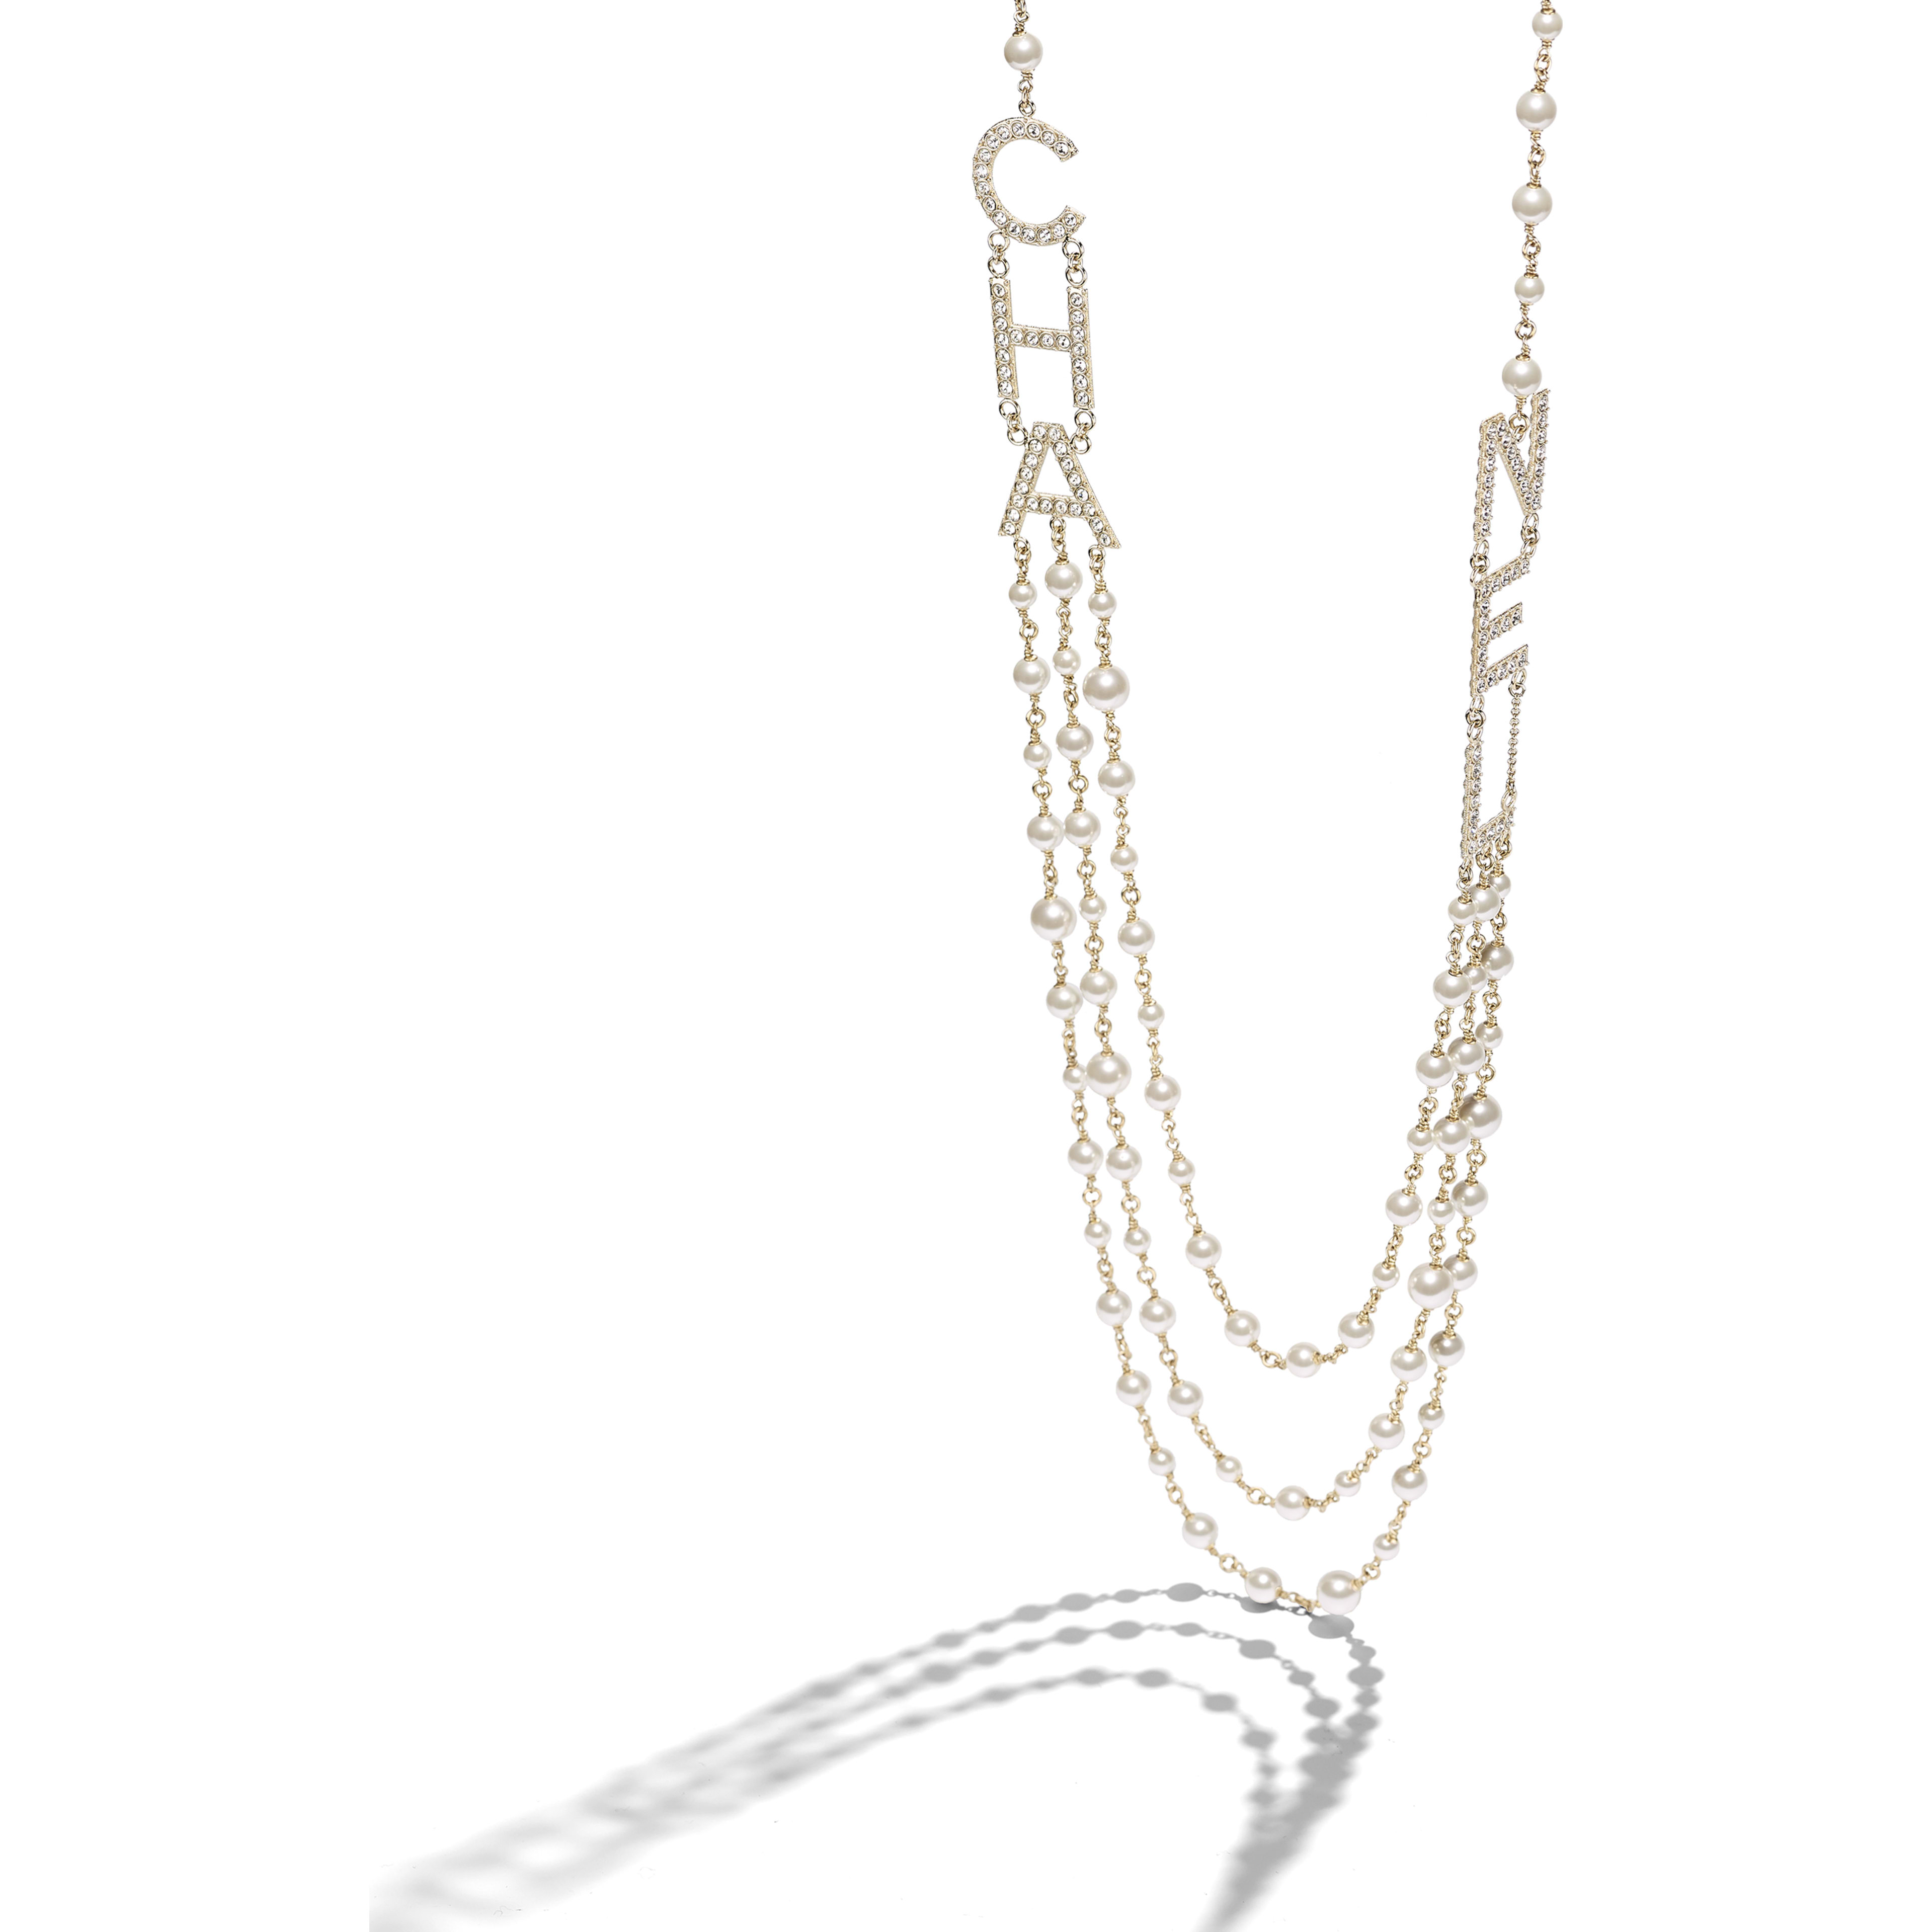 Long Necklace - Gold, Pearly White & Crystal - Metal, Glass Pearls & Strass - Alternative view - see full sized version